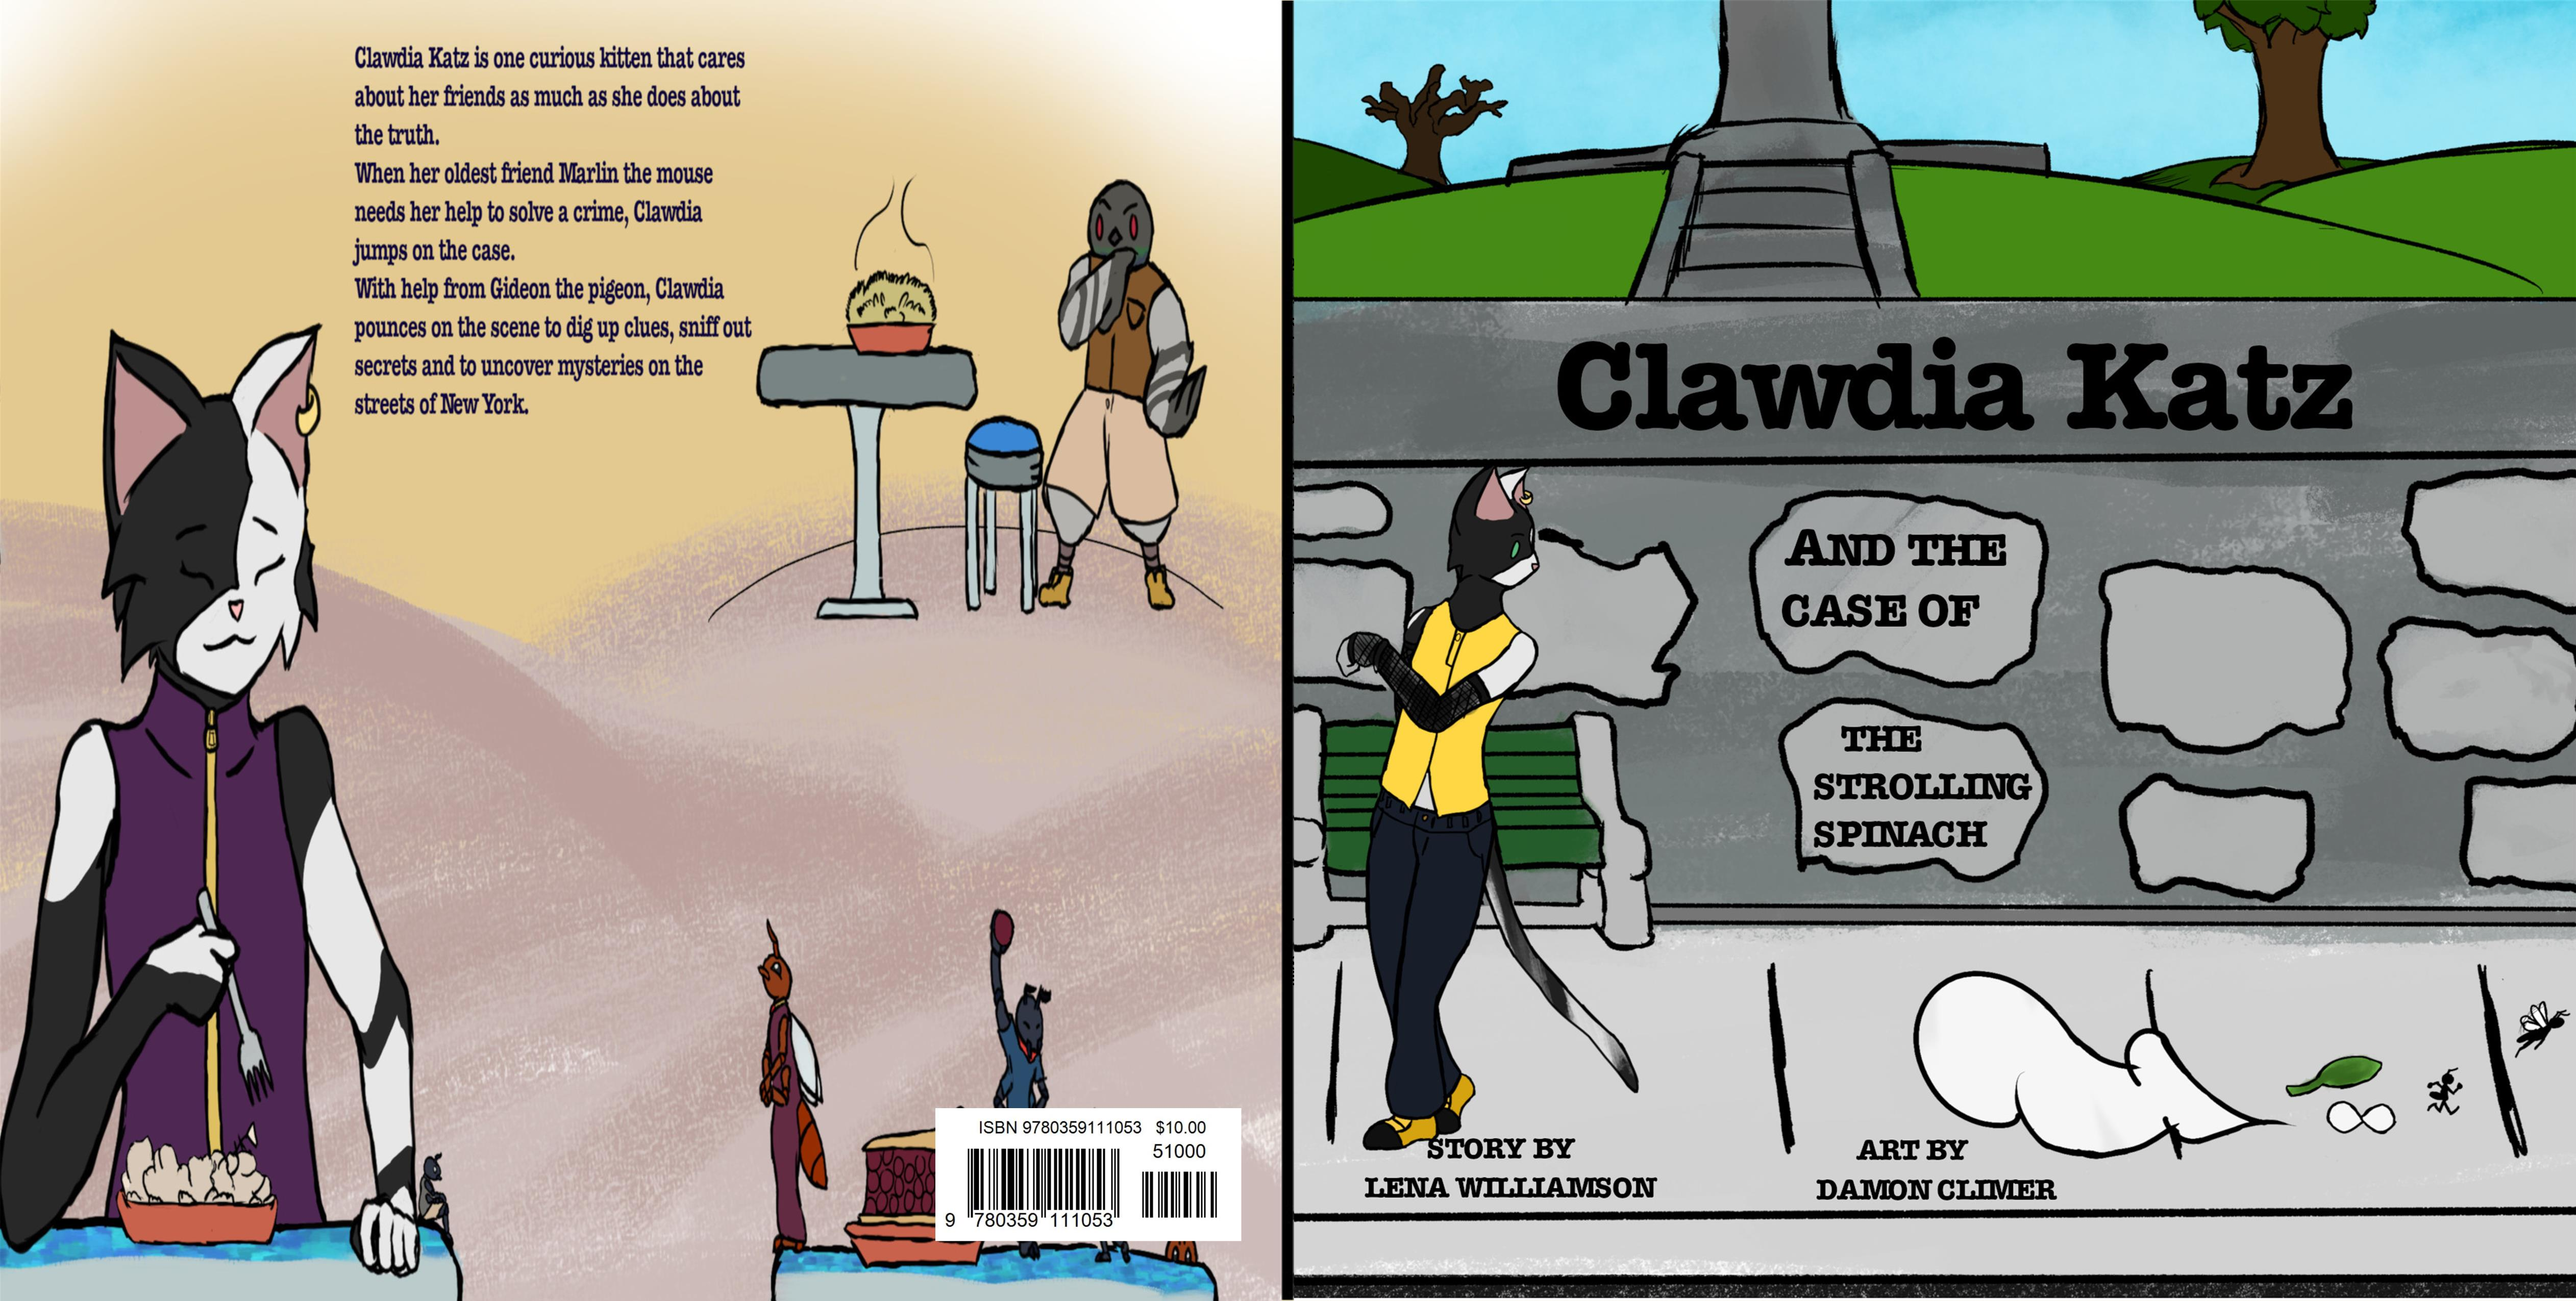 Clawdia Katz and The Case of the Strolling Spinach cover image